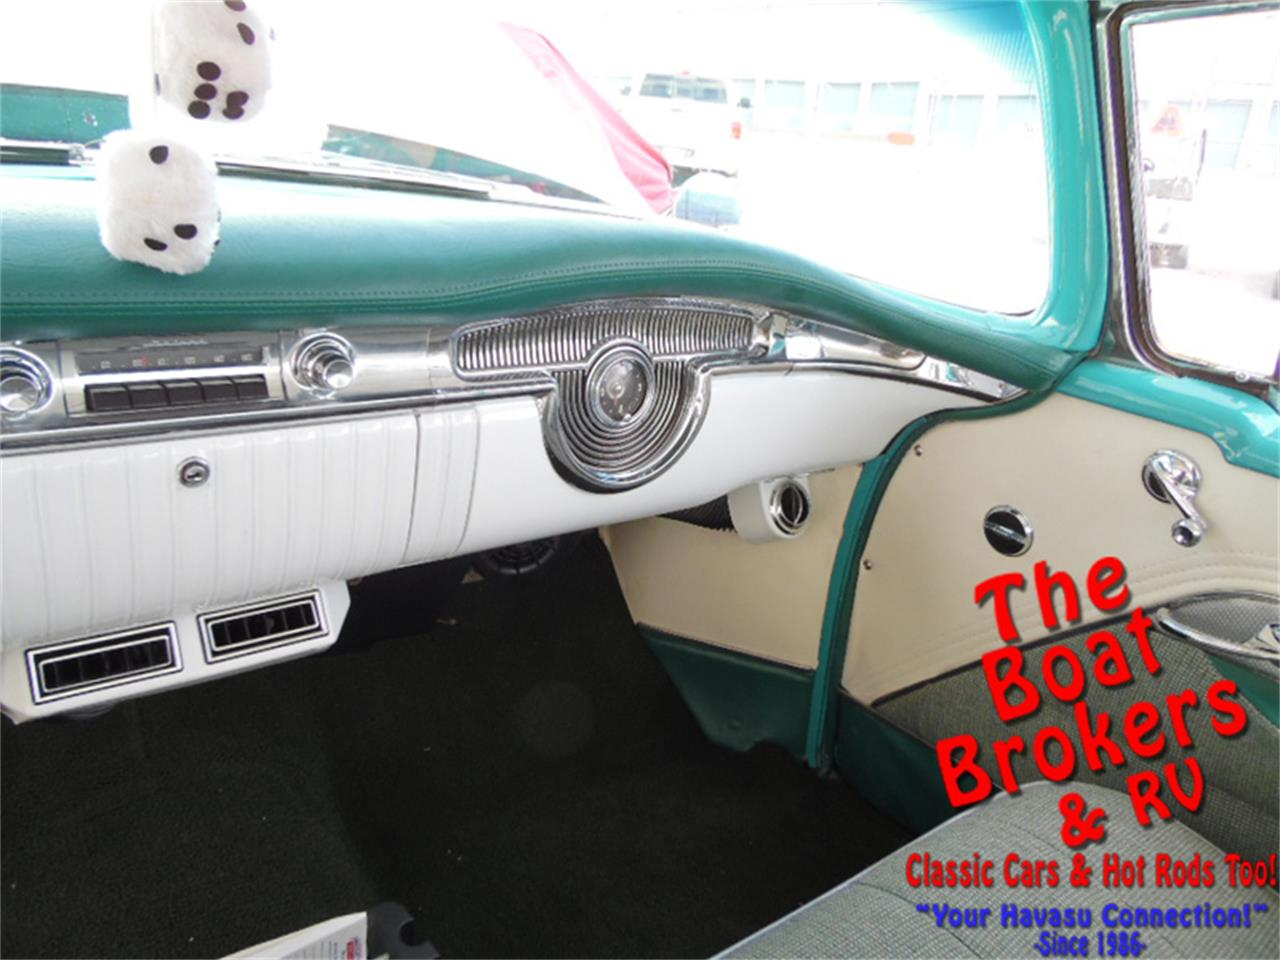 Large Picture of Classic '55 Oldsmobile Holiday Rocket 88 - $31,000.00 - N2PY